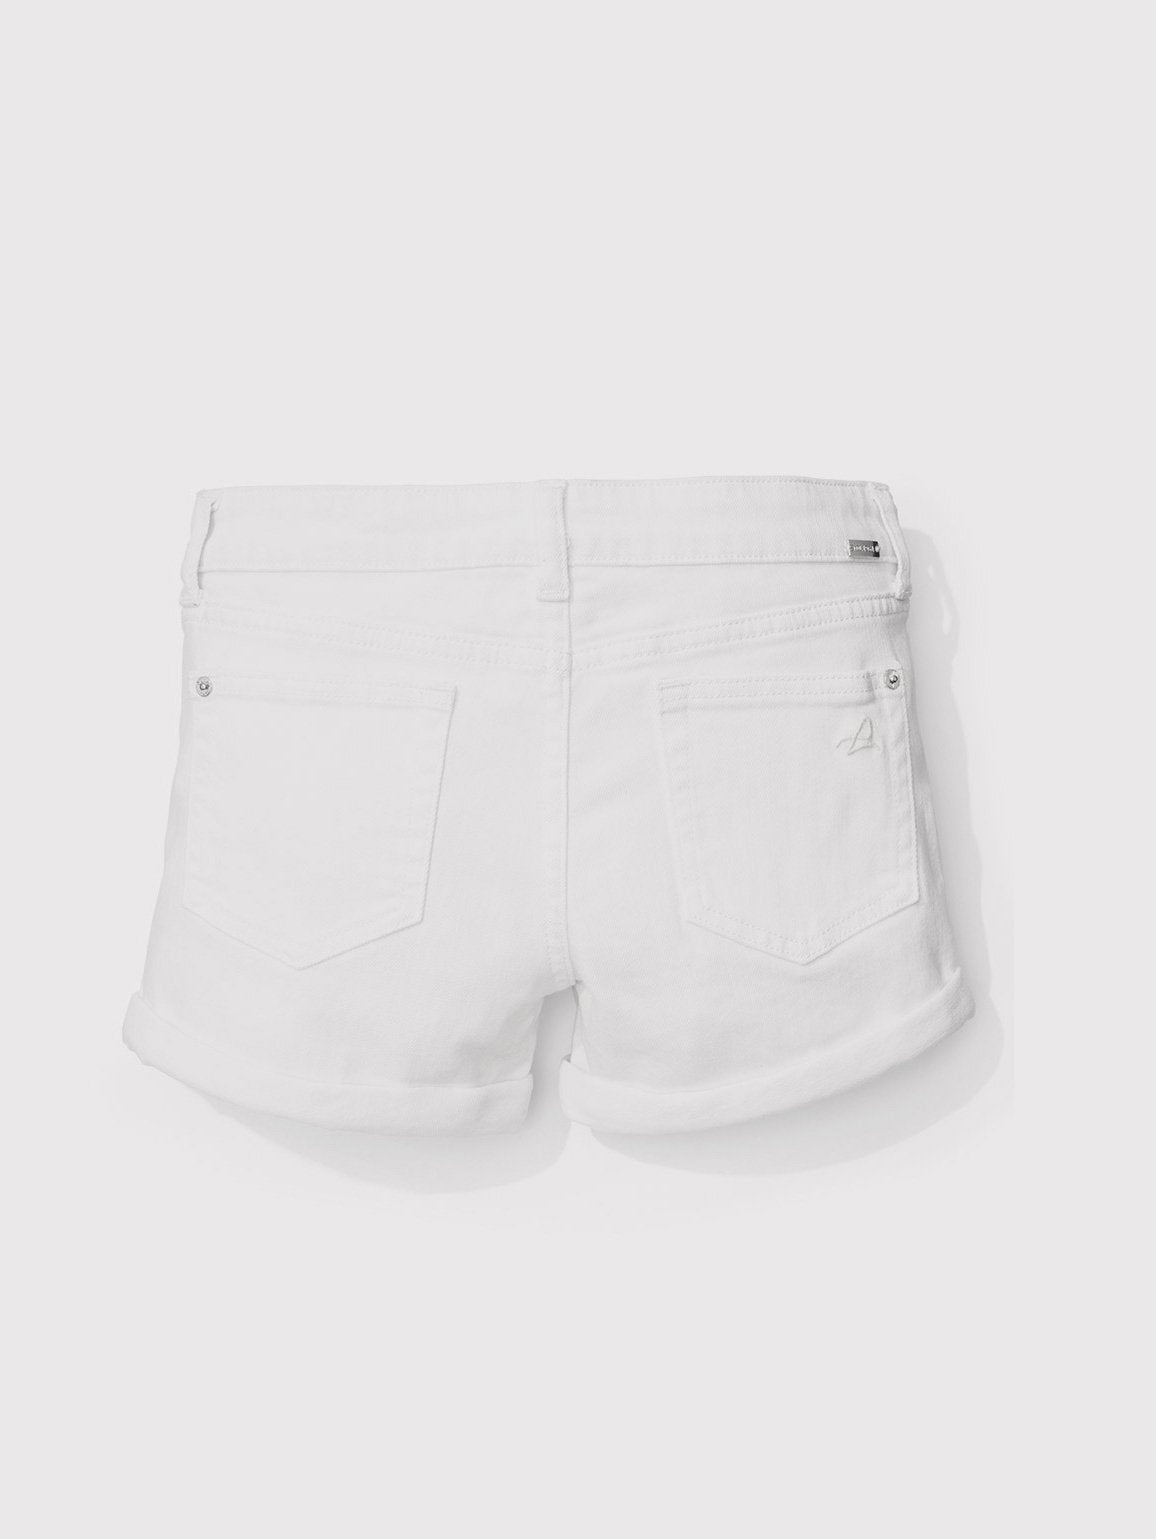 Girls - White Cuffed Denim Shorts - Piper/G Cuffed Short Griffon - DL1961